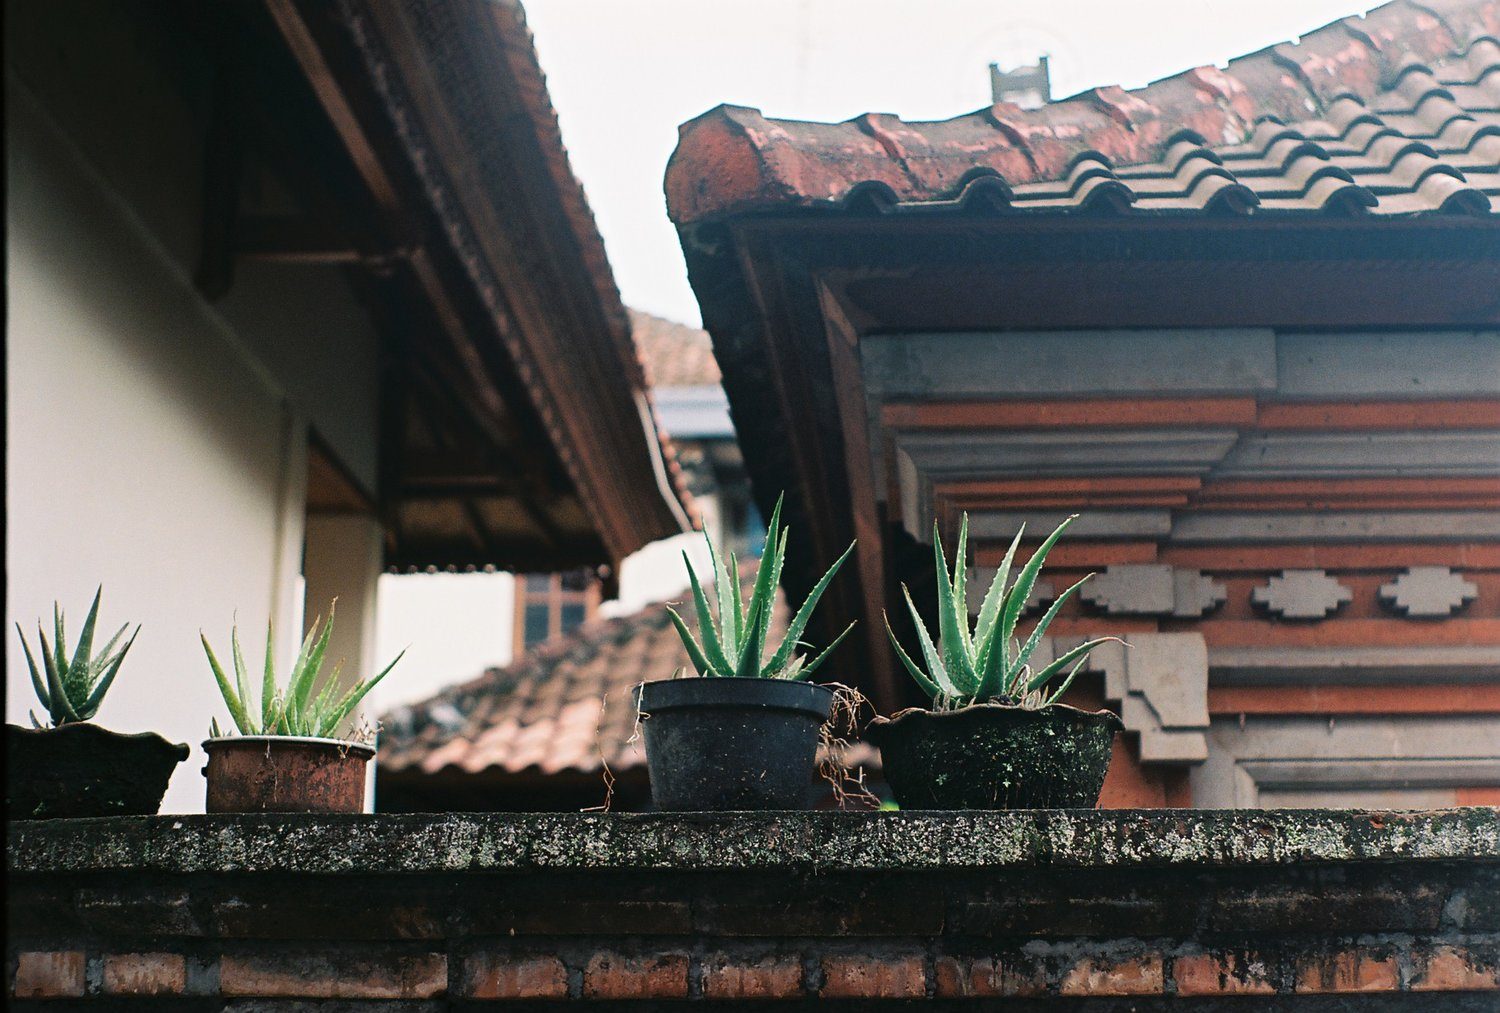 Aloe Vera Ubud Bali Analogue Travel Photographer